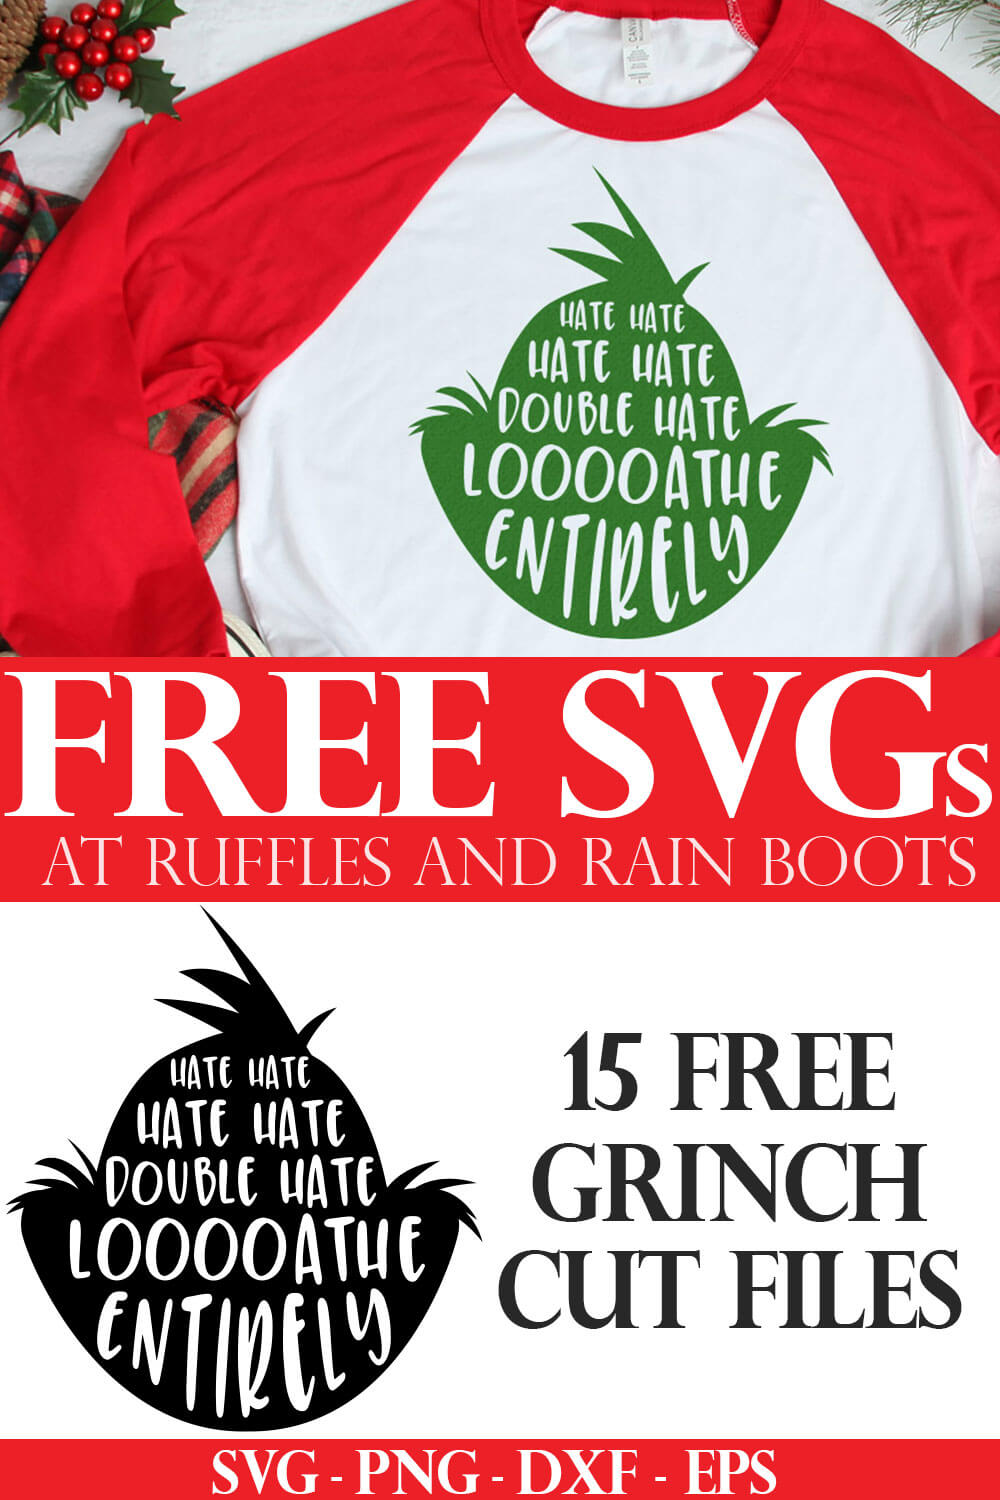 green loathe entirely grinch head svg on red raglan t shirt for holiday Cricut craft idea with text which reads 15 free grinch cut files and free svg at ruffles and rain boots